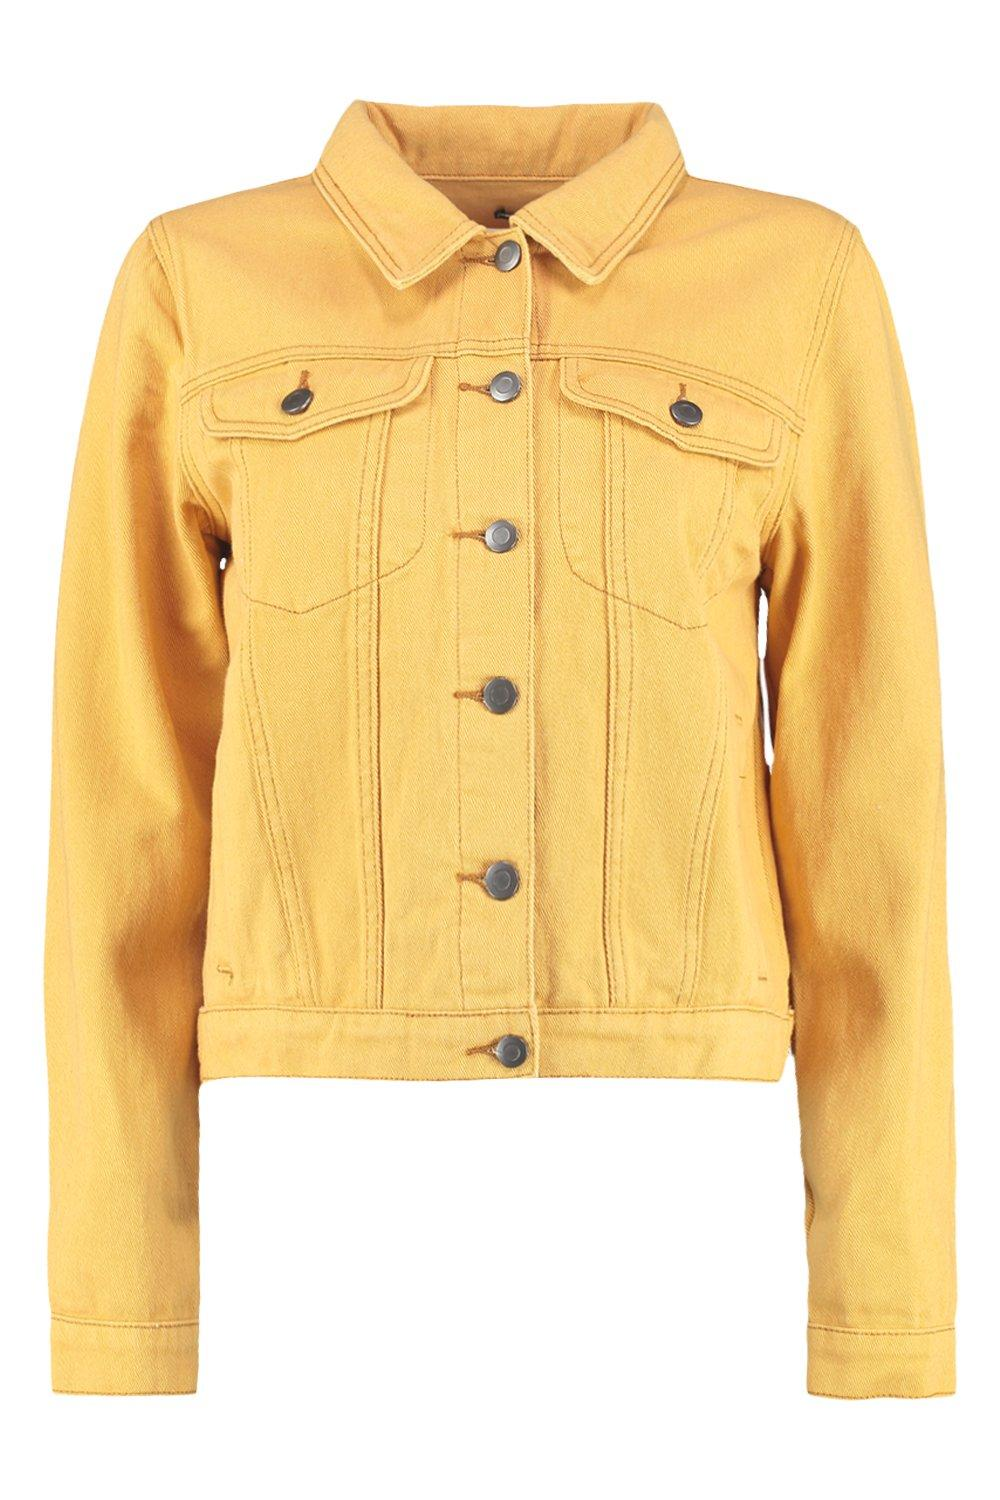 Jacket Pocket Pocket Denim Jacket yellow yellow Denim SxgX55Zqw